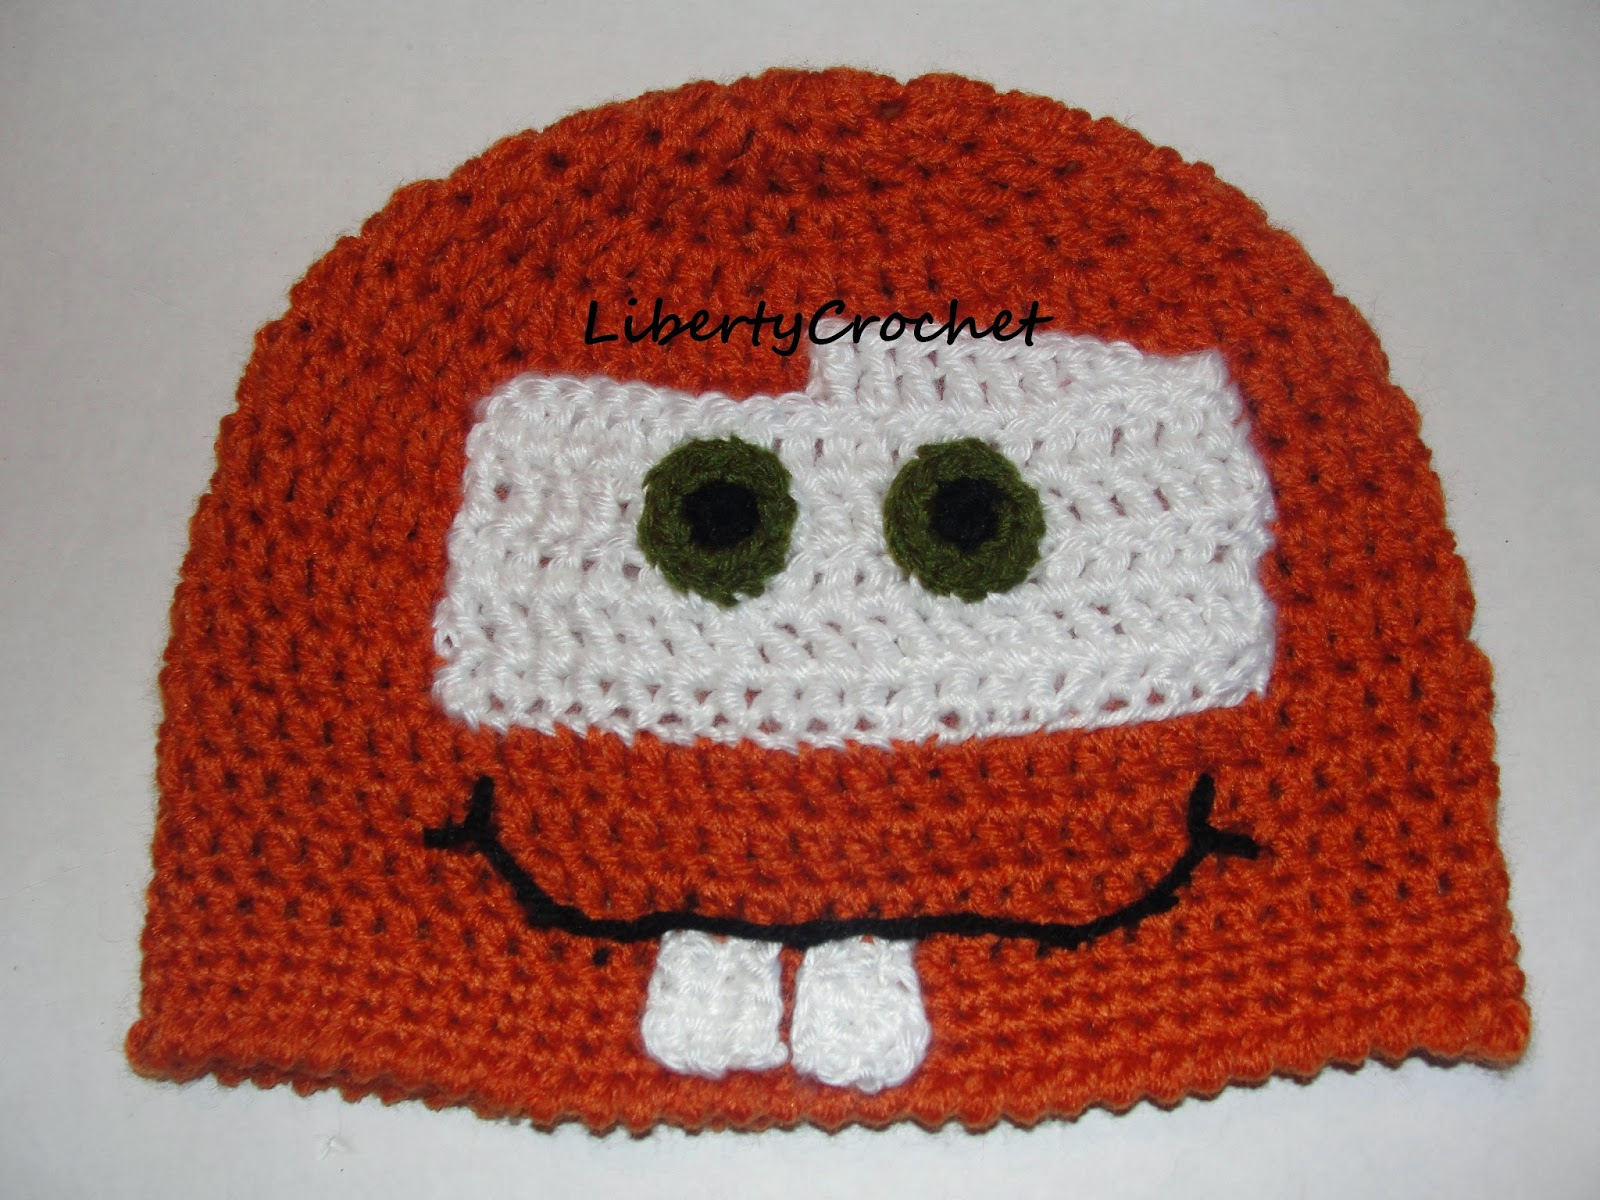 Libertycrochet tow mater hat tow mater hat bankloansurffo Choice Image